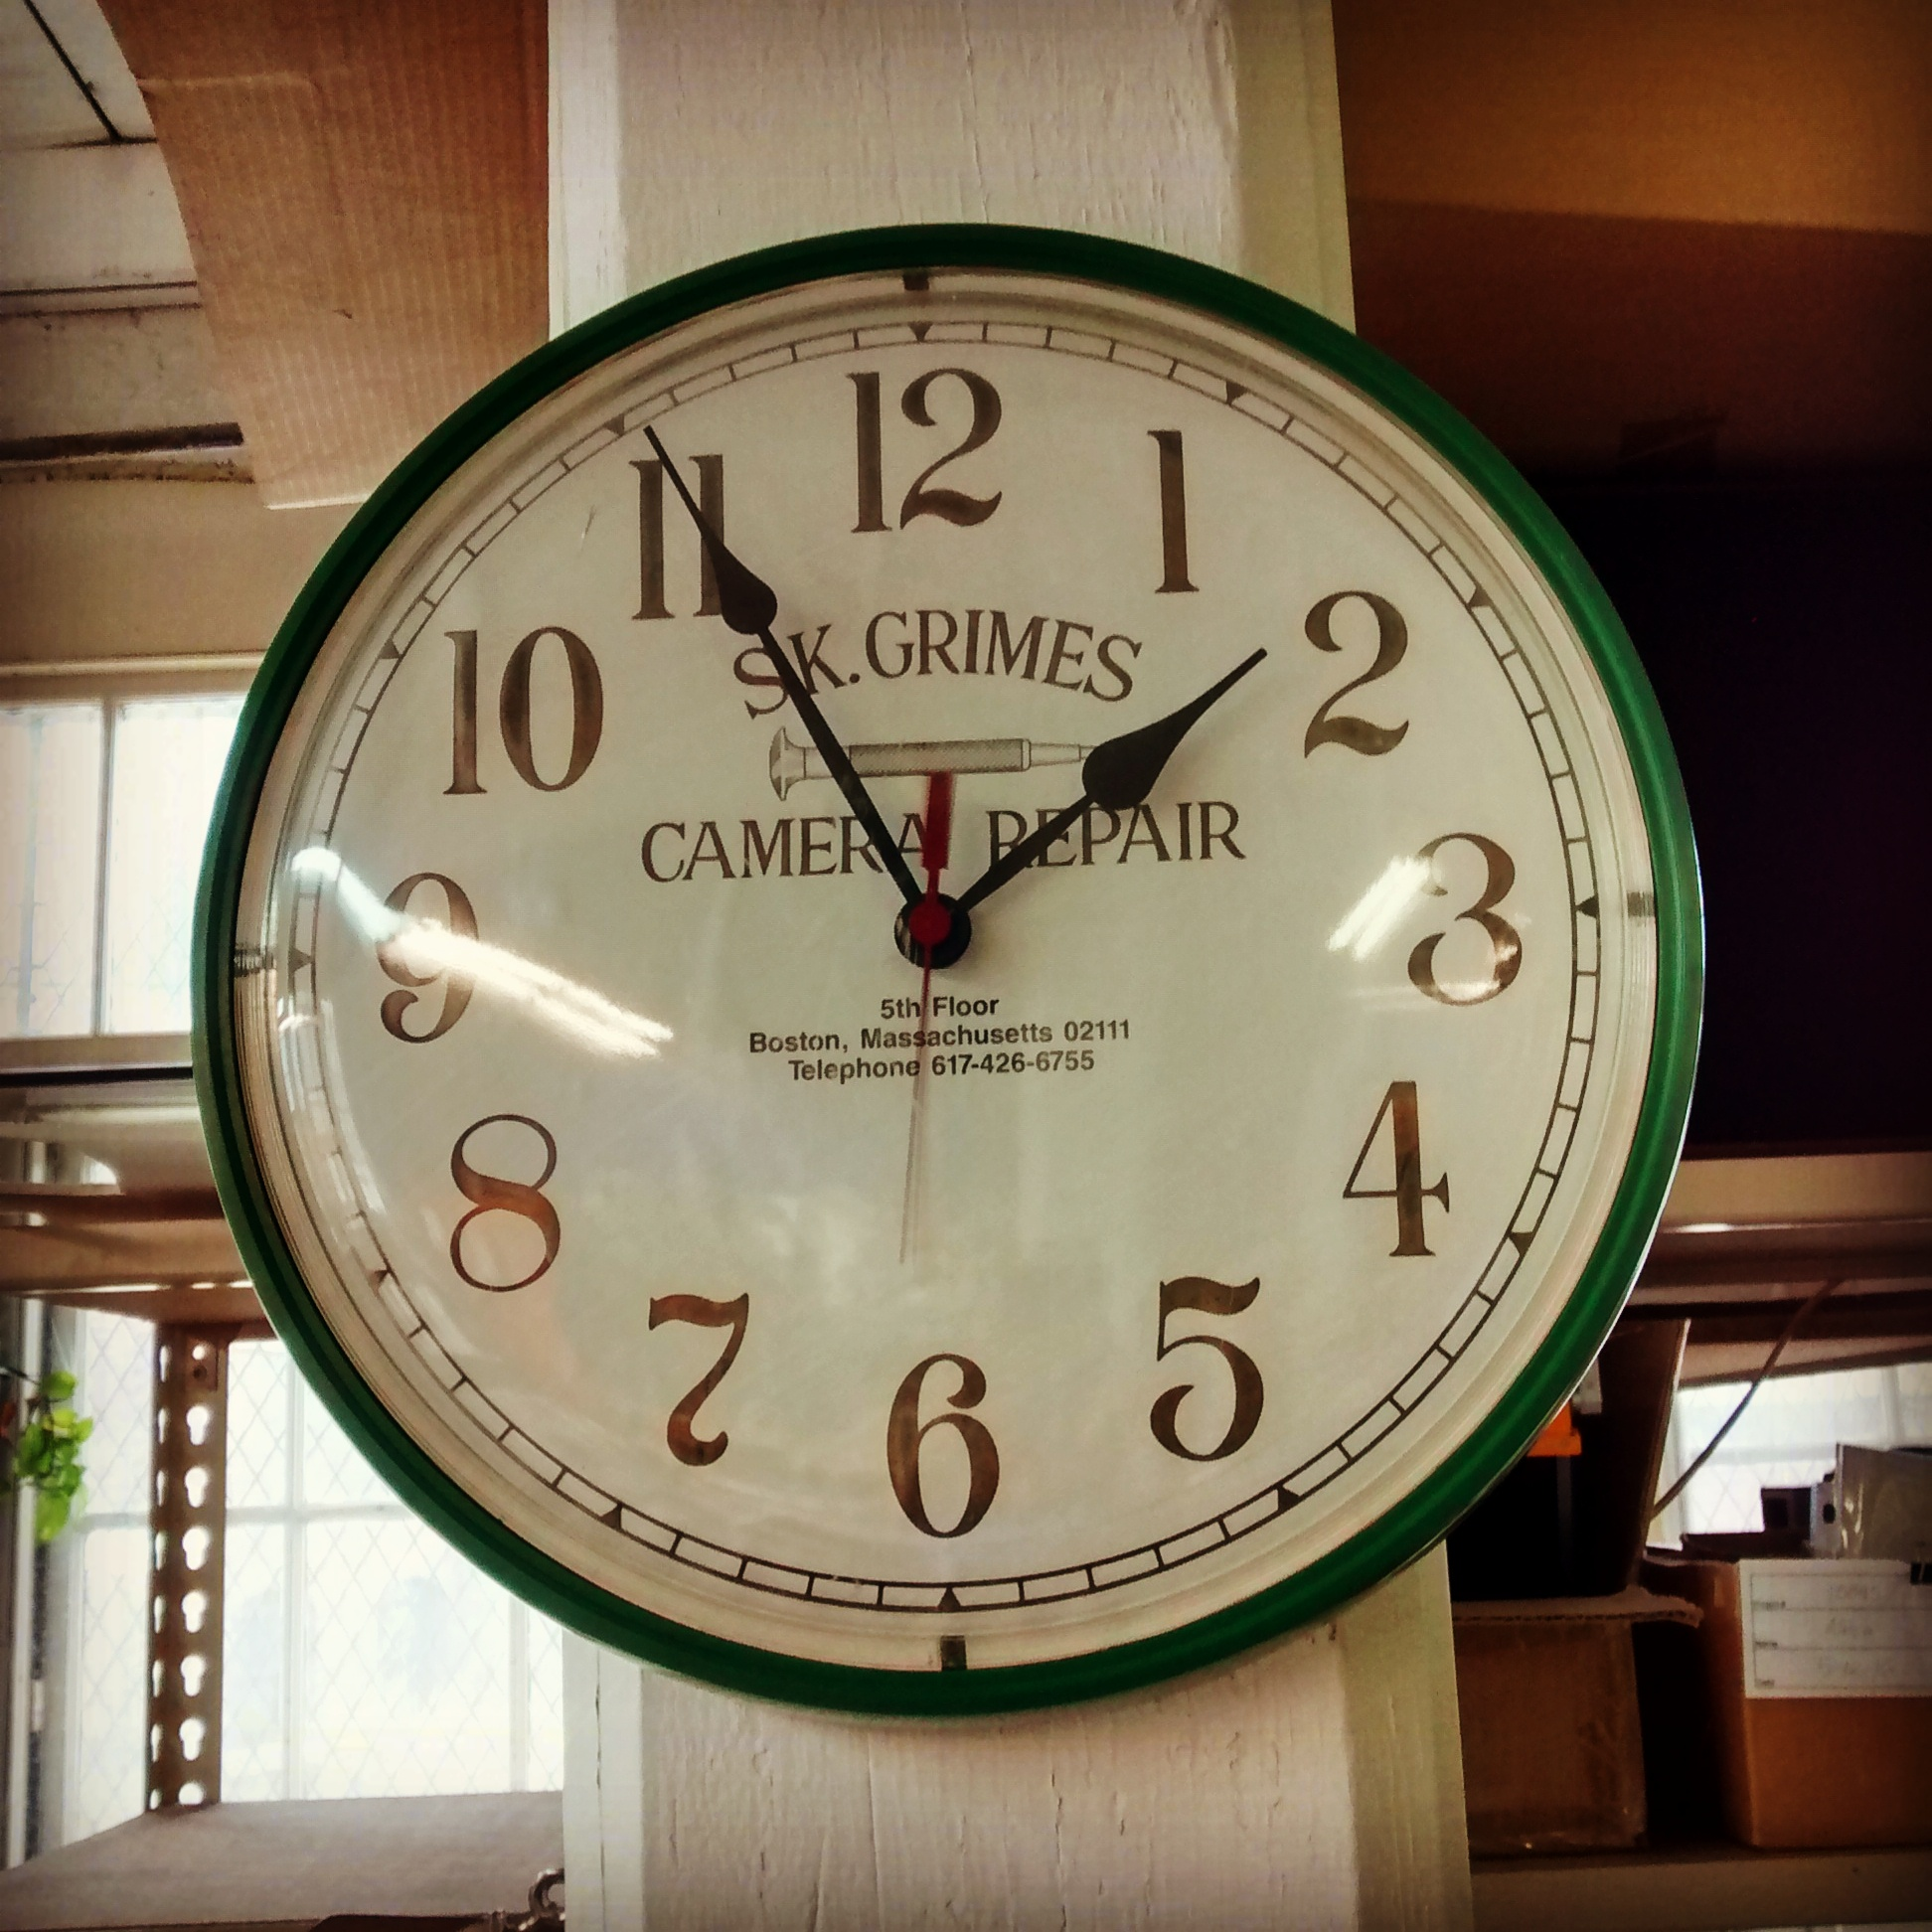 The Clock, S.K. Grimes Camera Repair